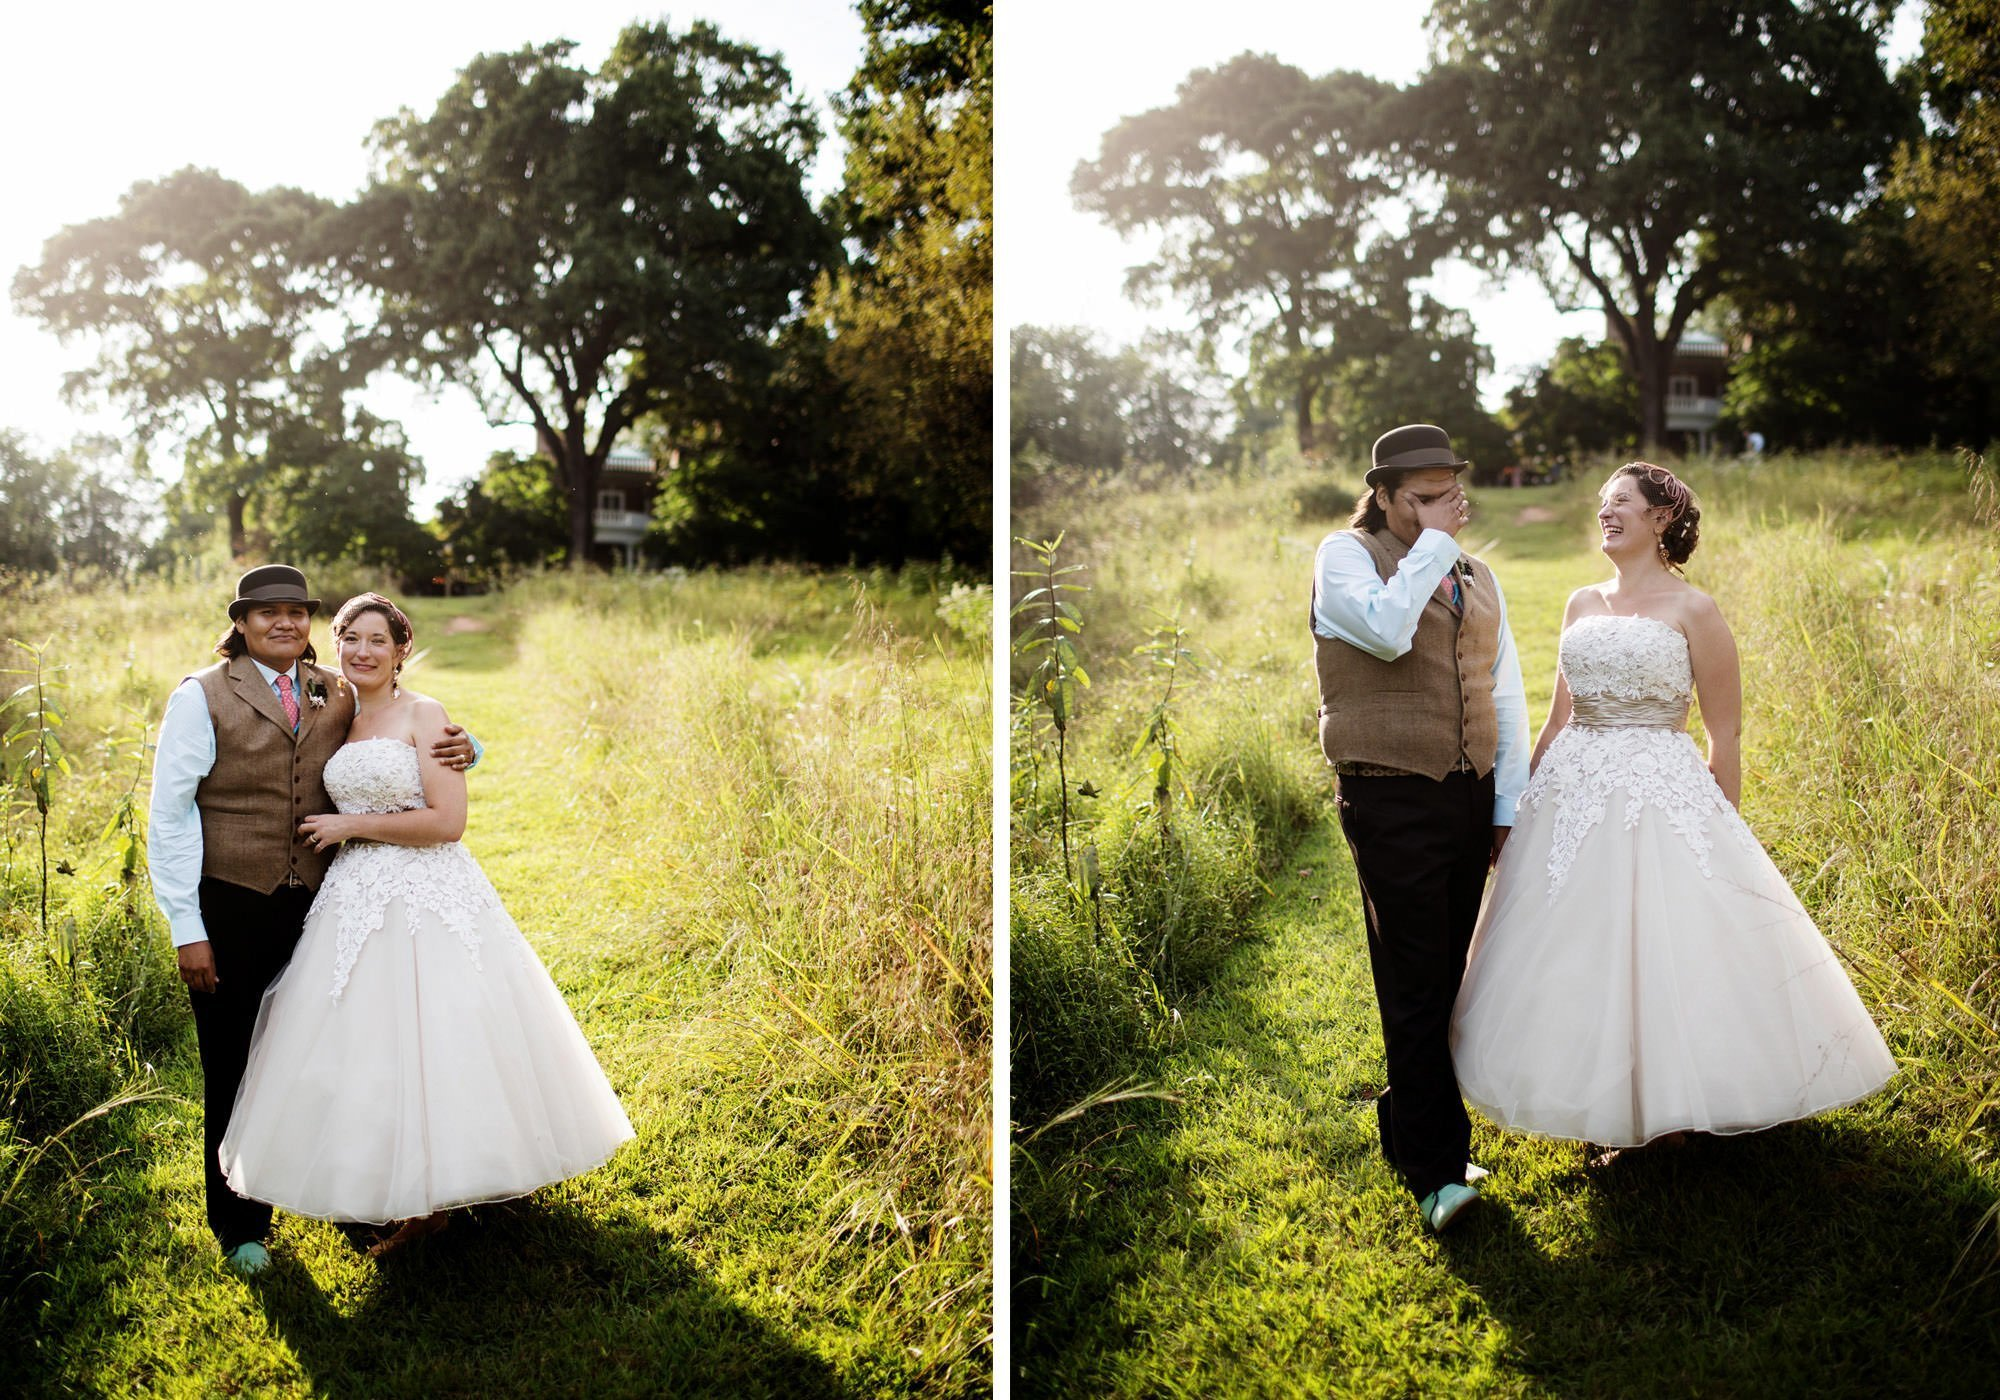 The couple poses for portraits on their Woodend Sanctuary and Mansion wedding day.